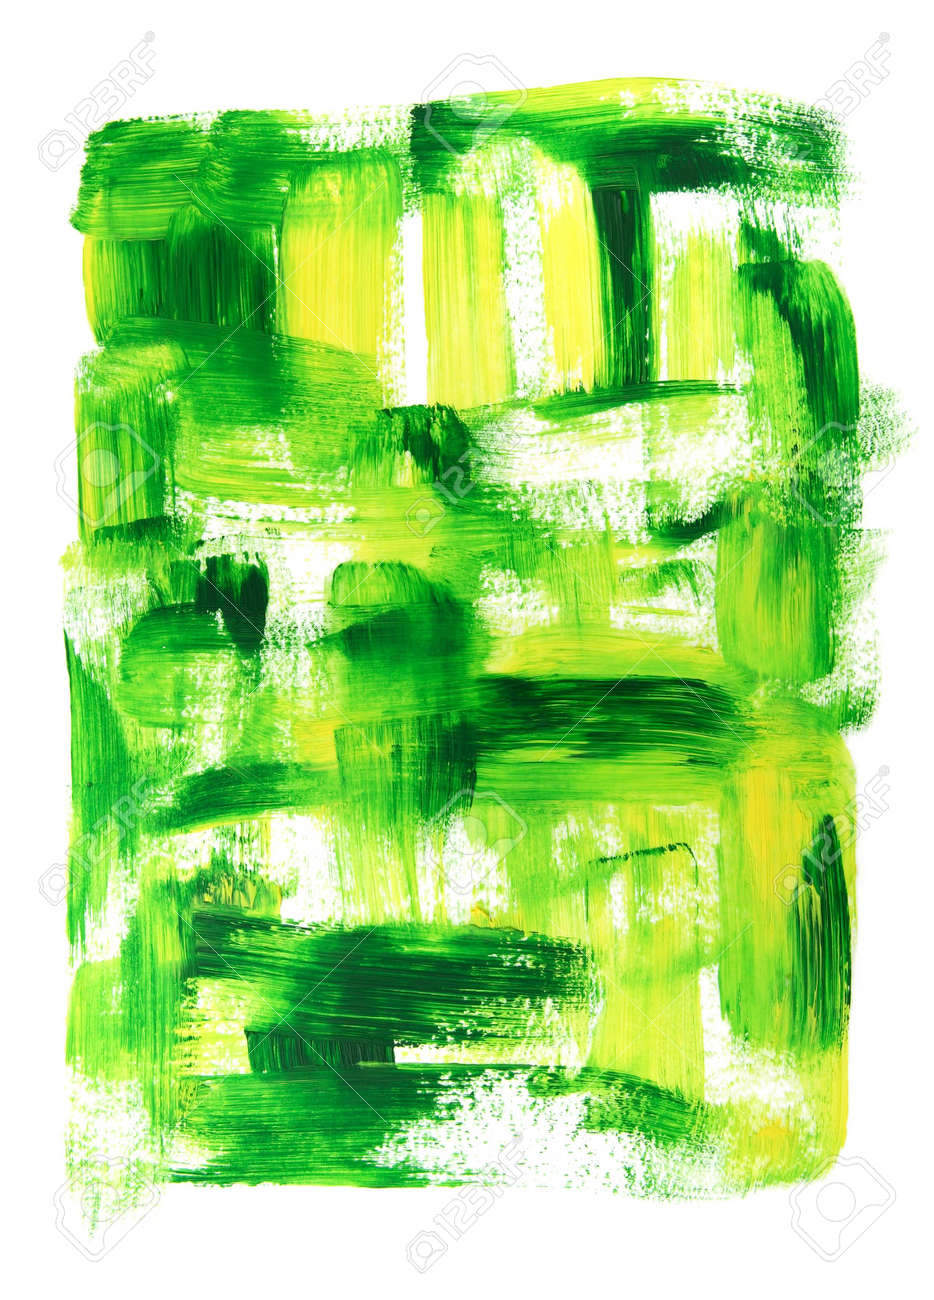 Vibrant green and yellow oil painting. Hand-painted abstract background. Stock Photo - 3898086